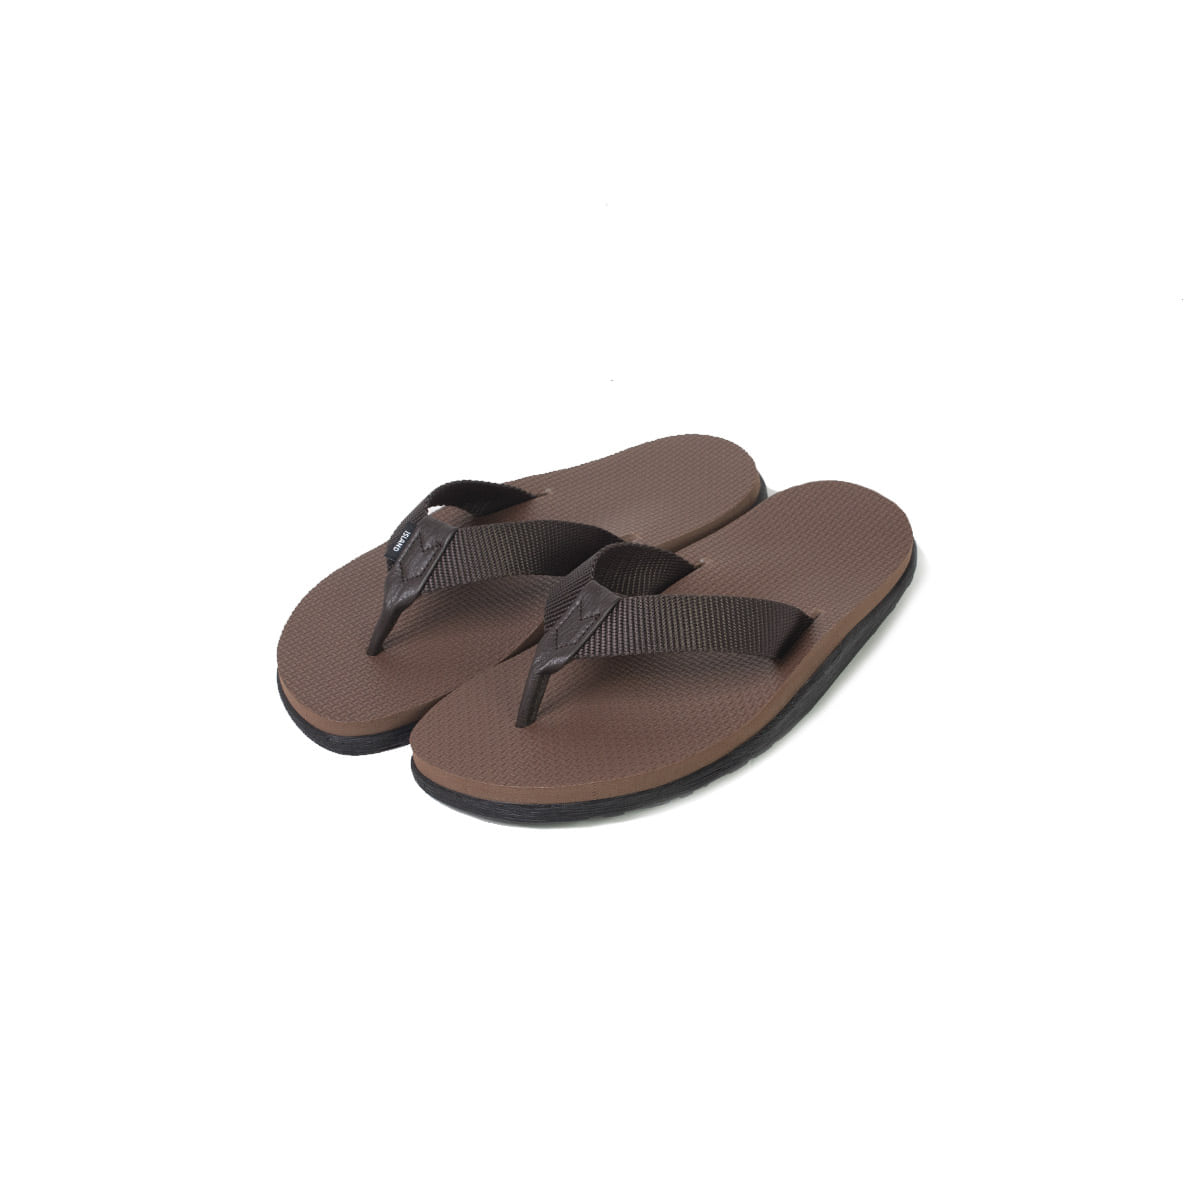 [ISLAND SLIPPER] K1P910LT 'BROWN'